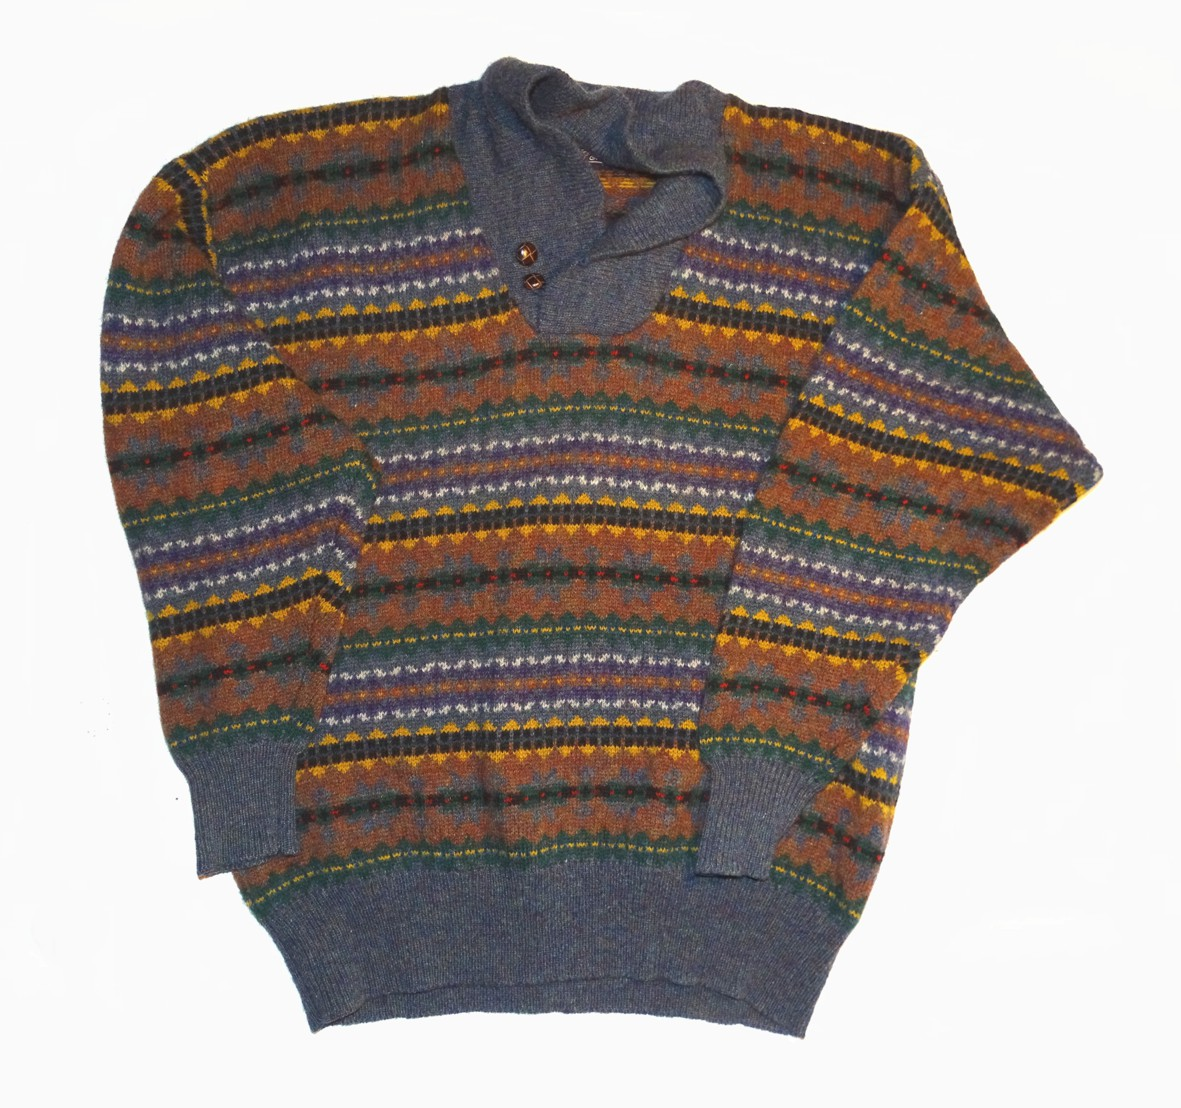 garment made of flat knitted fabric